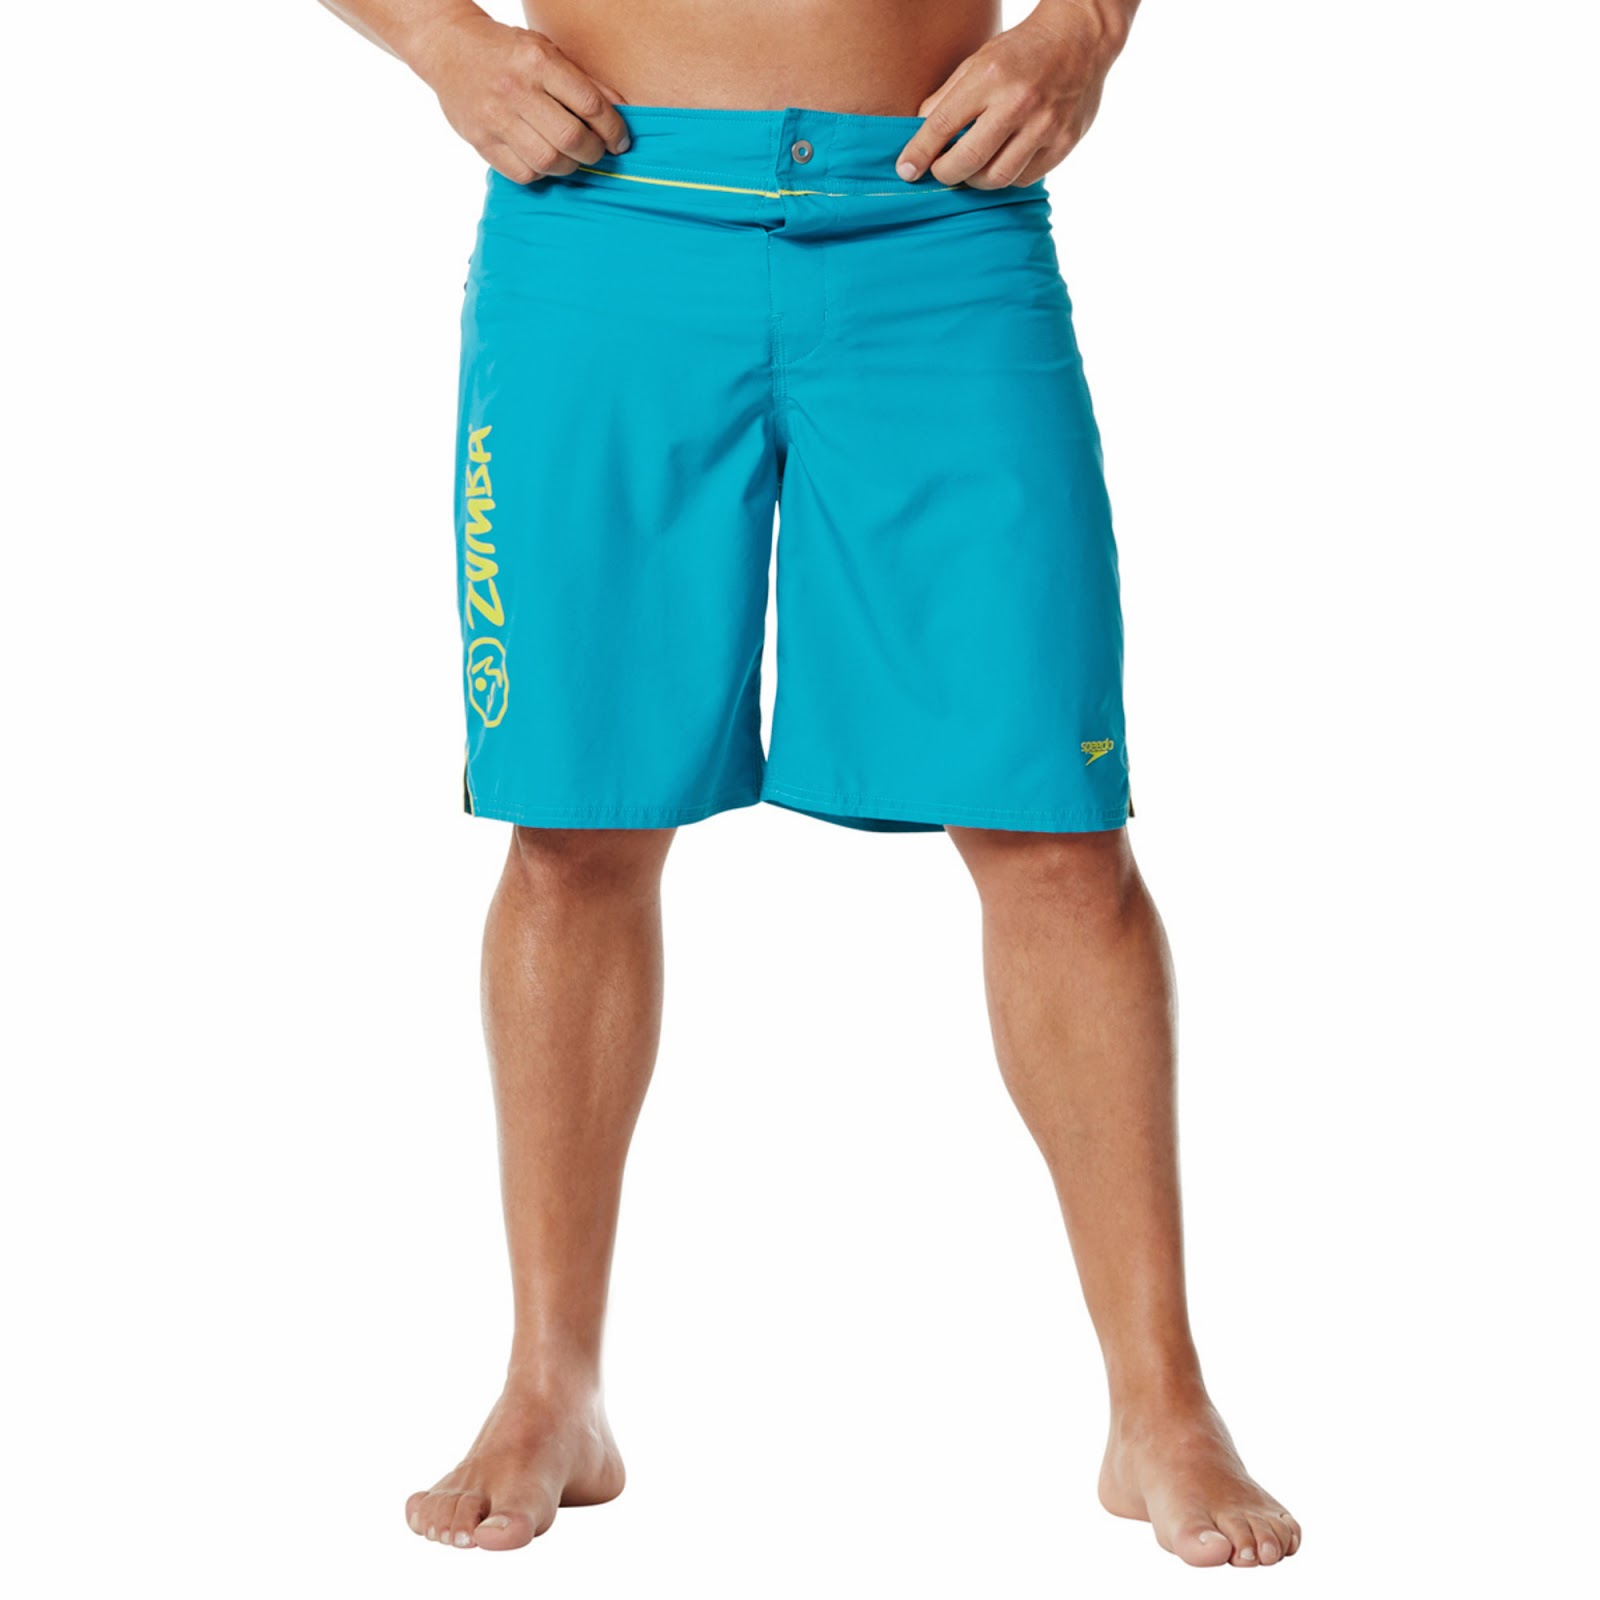 http://www.zumba.com/en-US/store-zin/US/product/secret-admirer-broadshort?color=Teal+Blue#show_menu